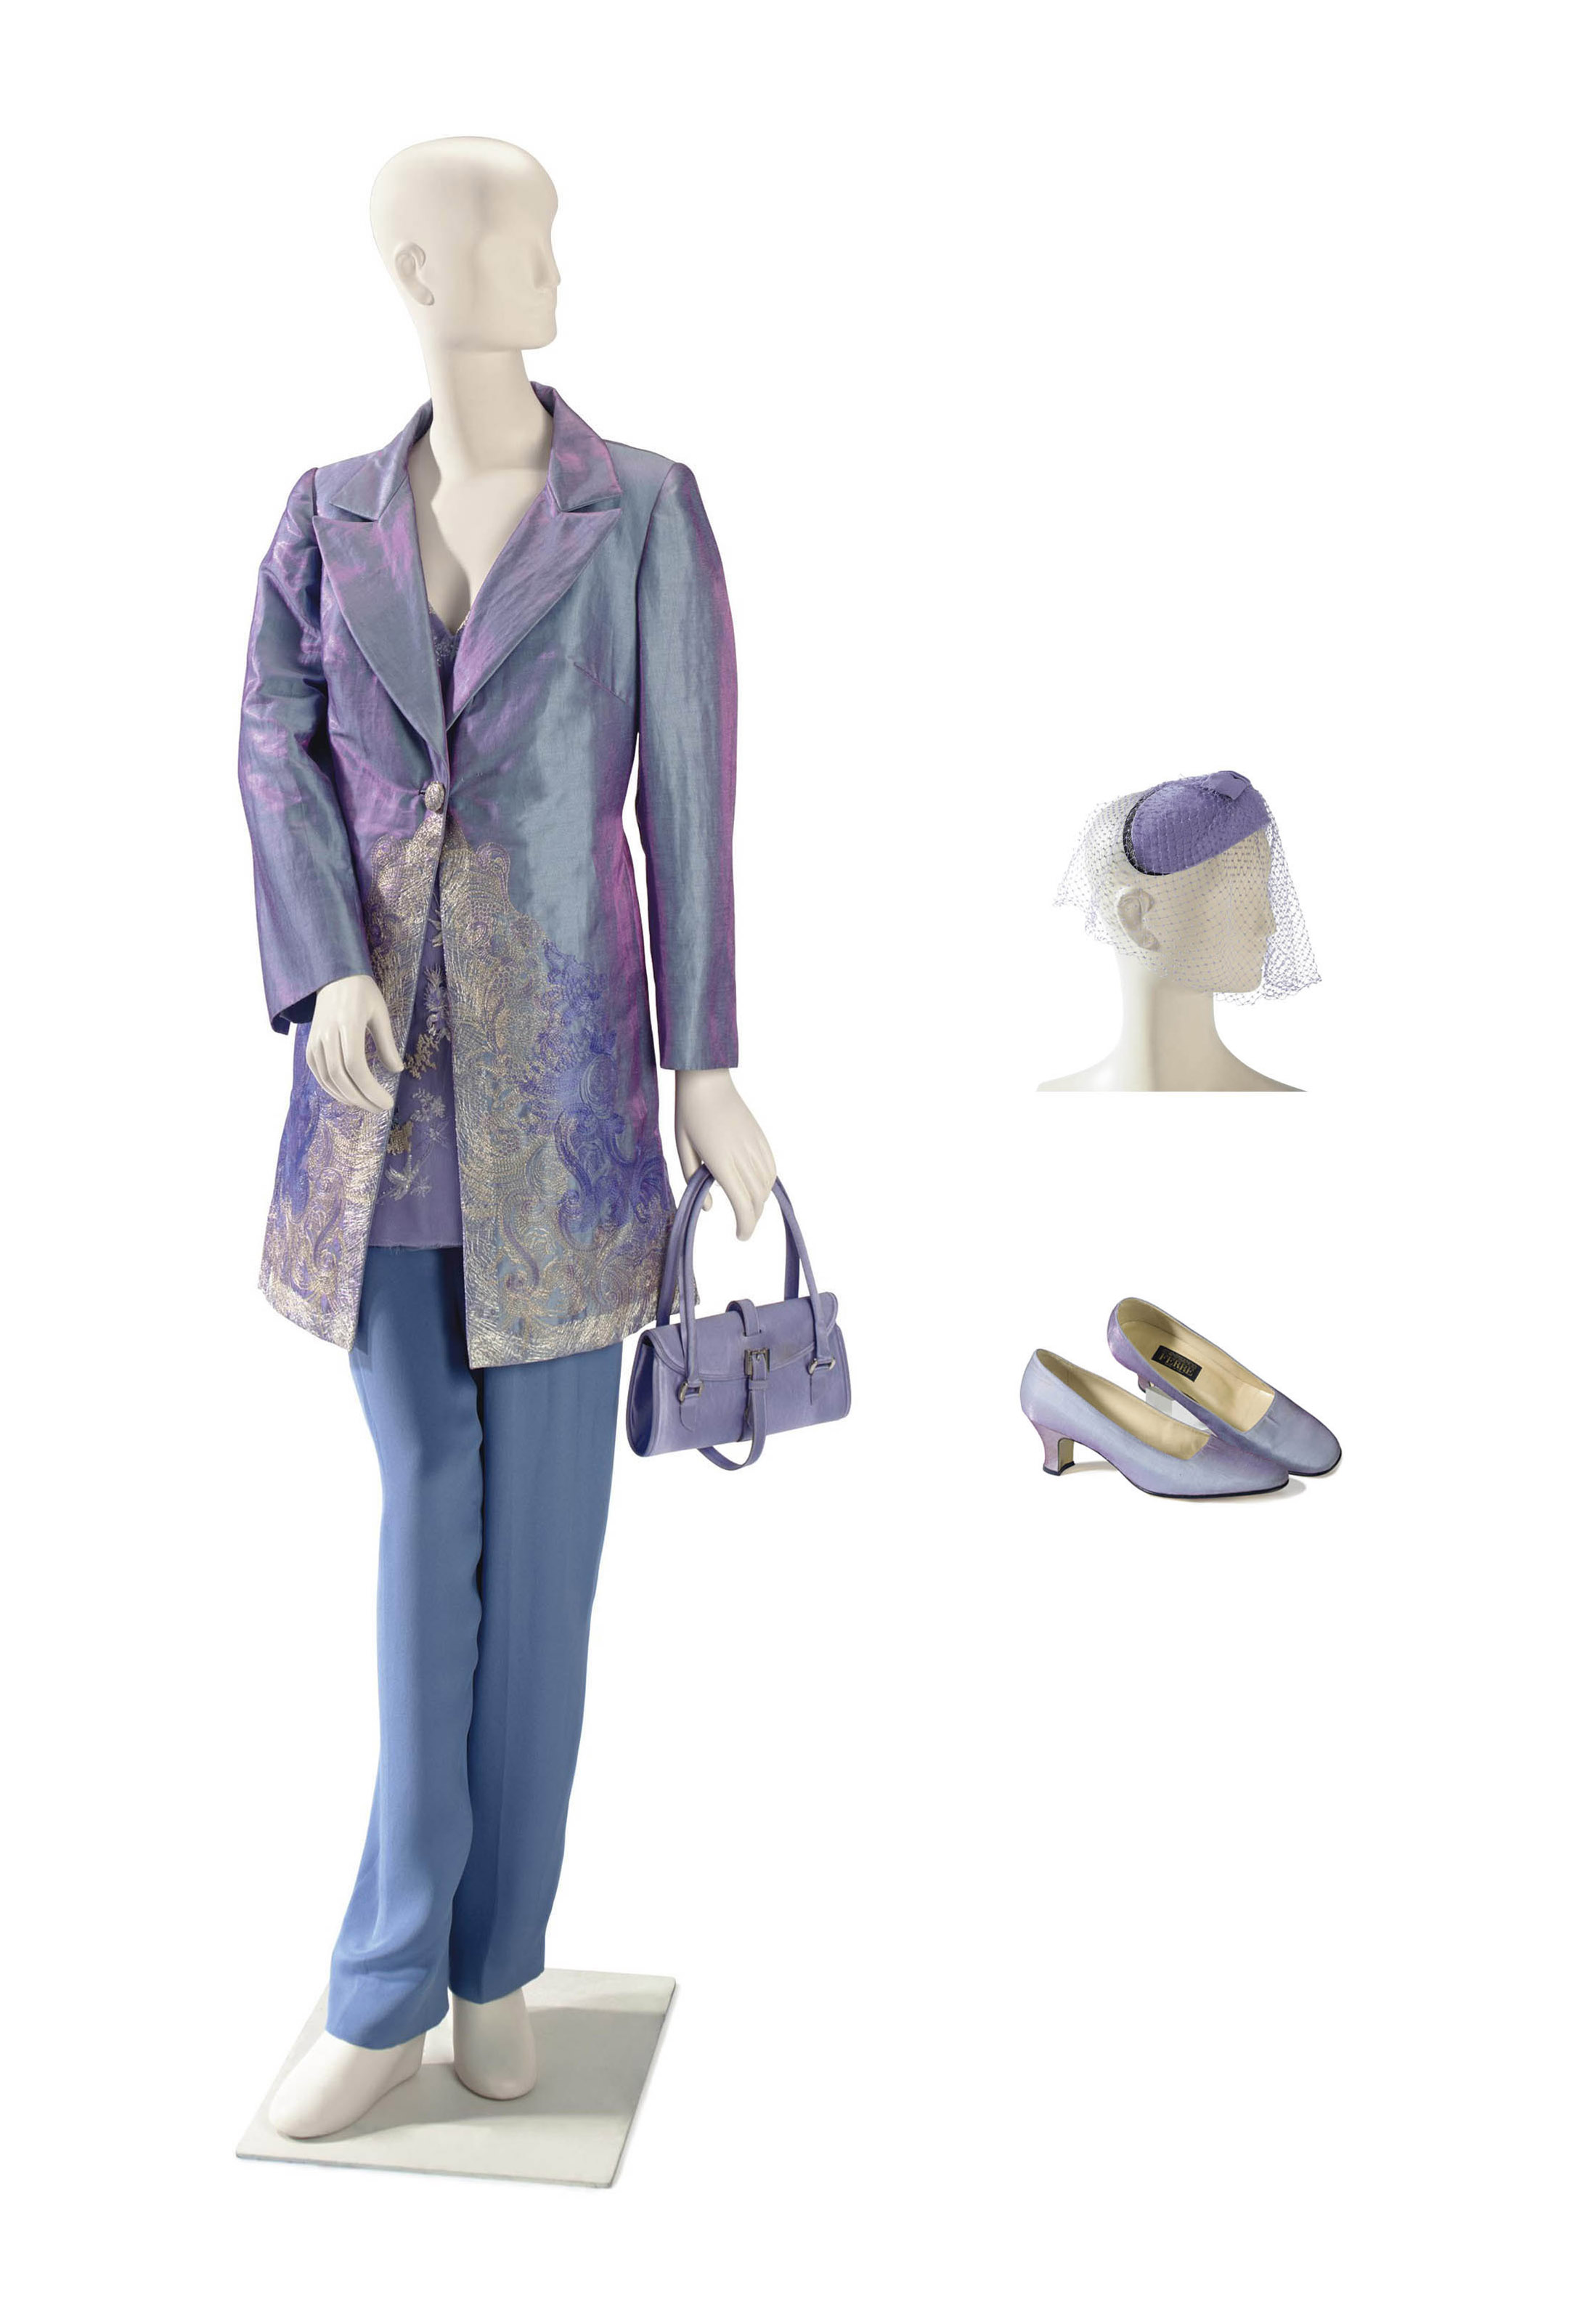 A GIANFRANCO FERRÉ LAVENDER EMBROIDERED SILK TROUSER SUIT